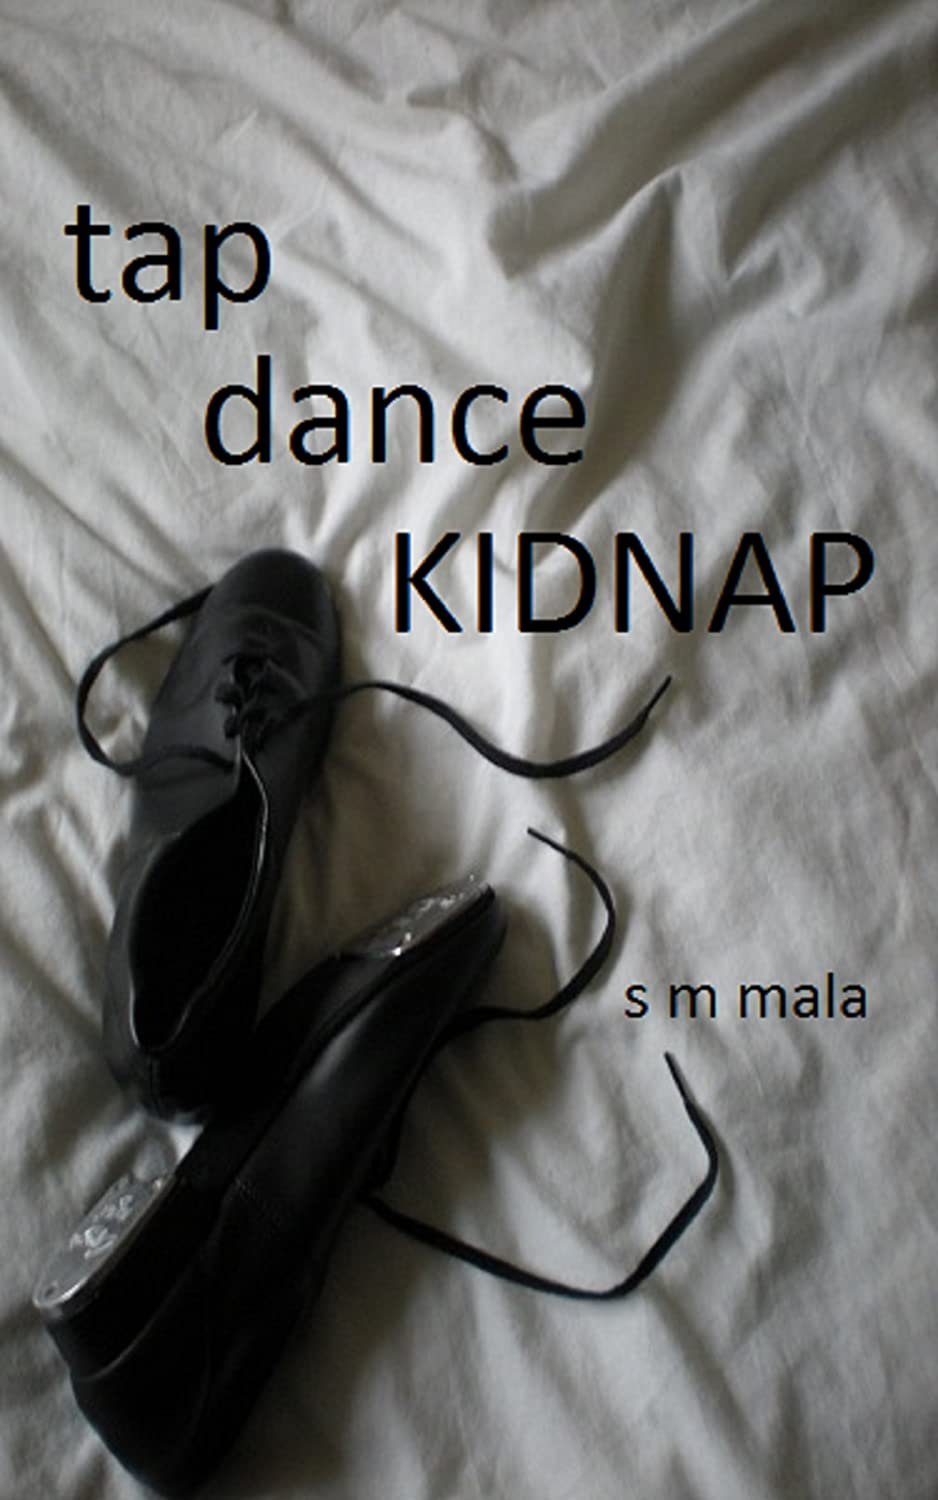 Tap-Dance-Kidnap-choice-1-small-save-with-text